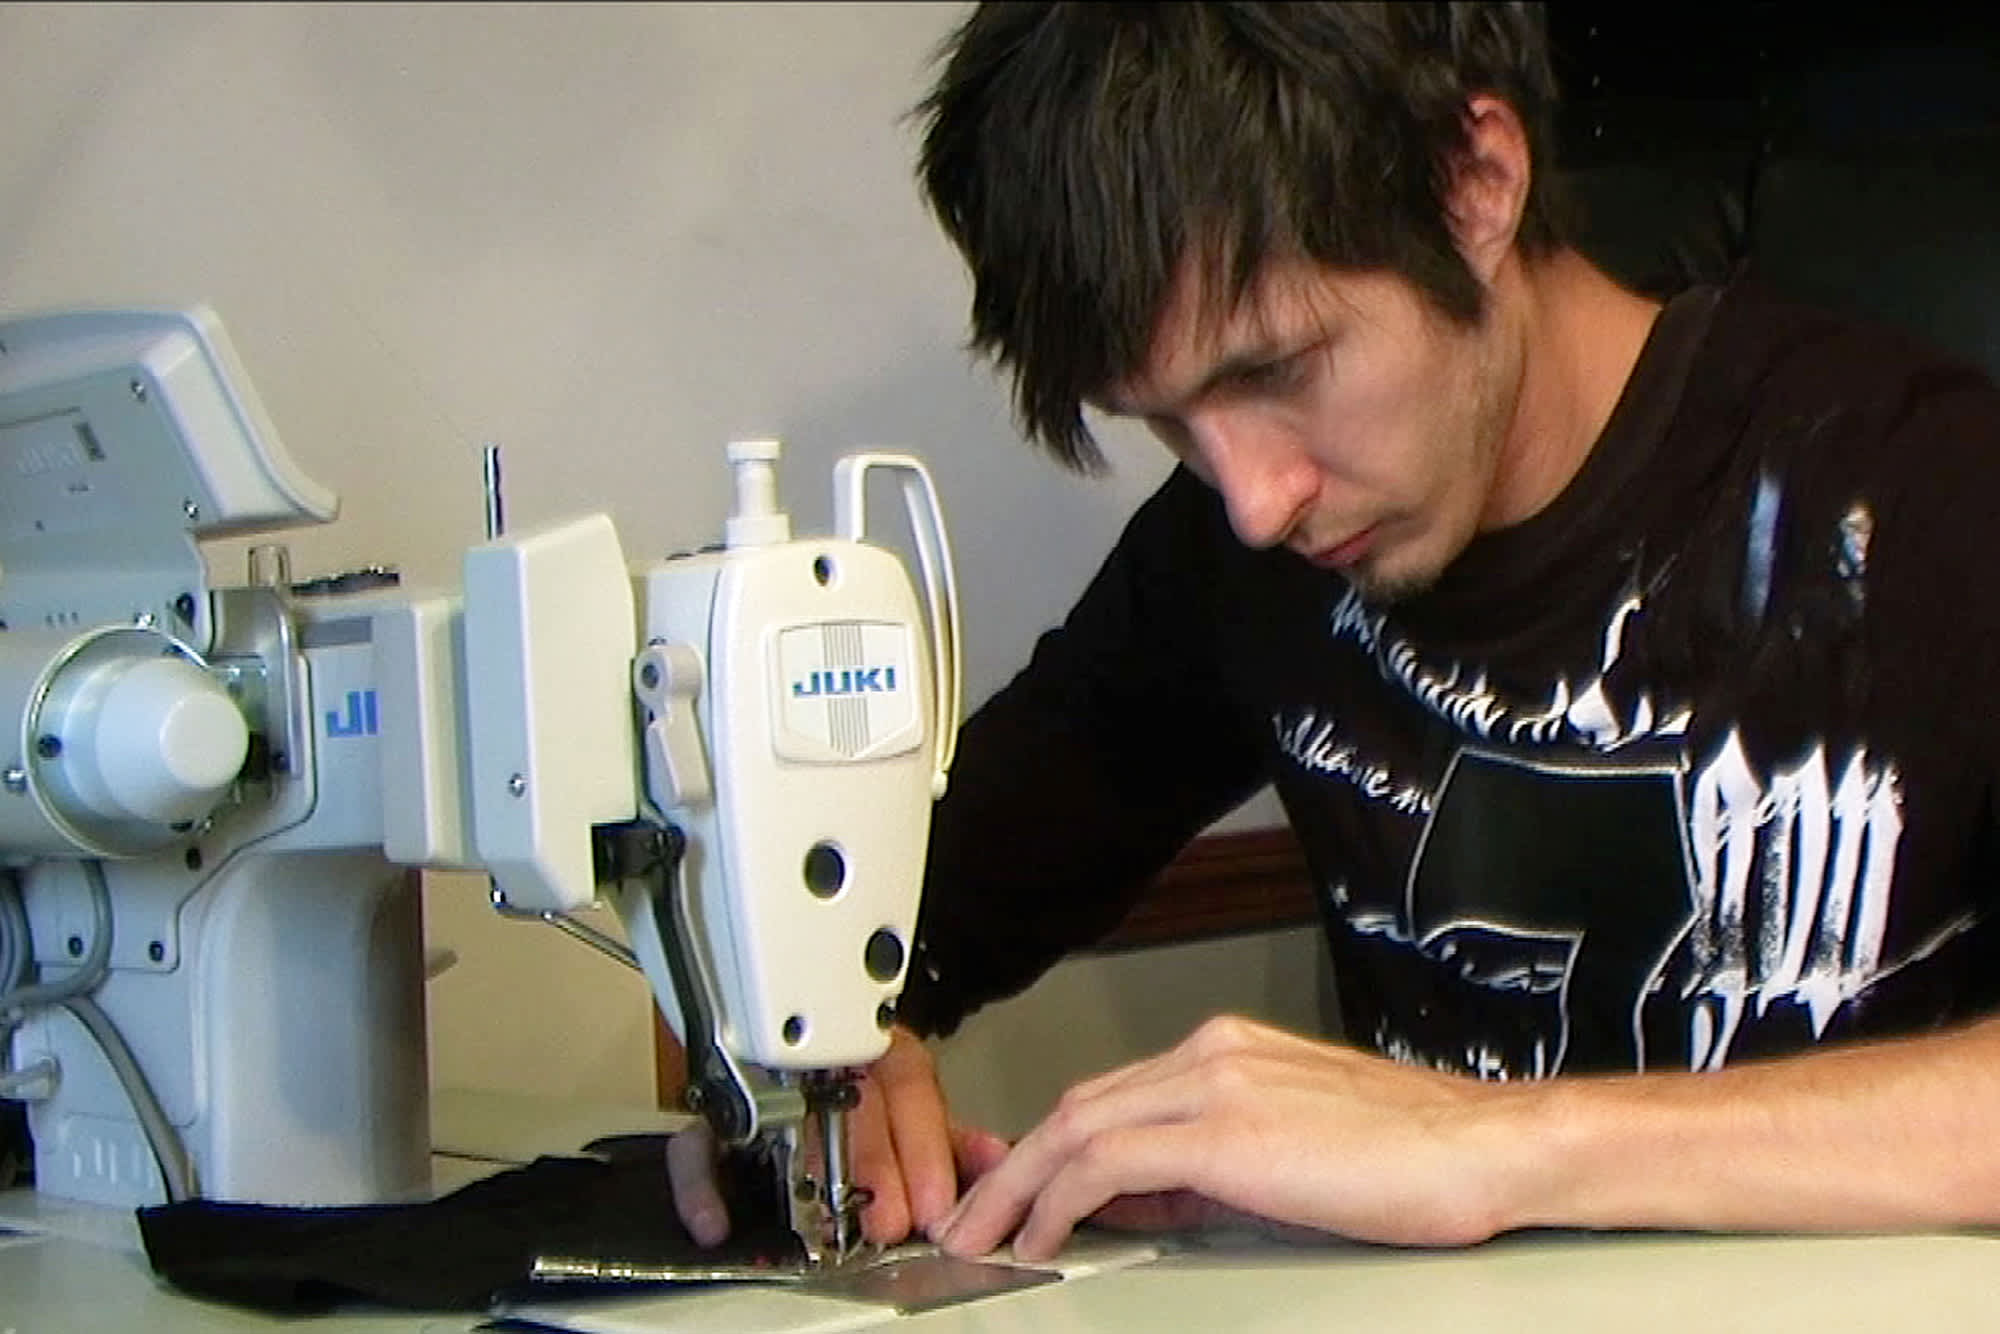 Anton Babich makes custom dress shirts for his emerging company, Anton Alexander, based in Fort Wayne, Ind.